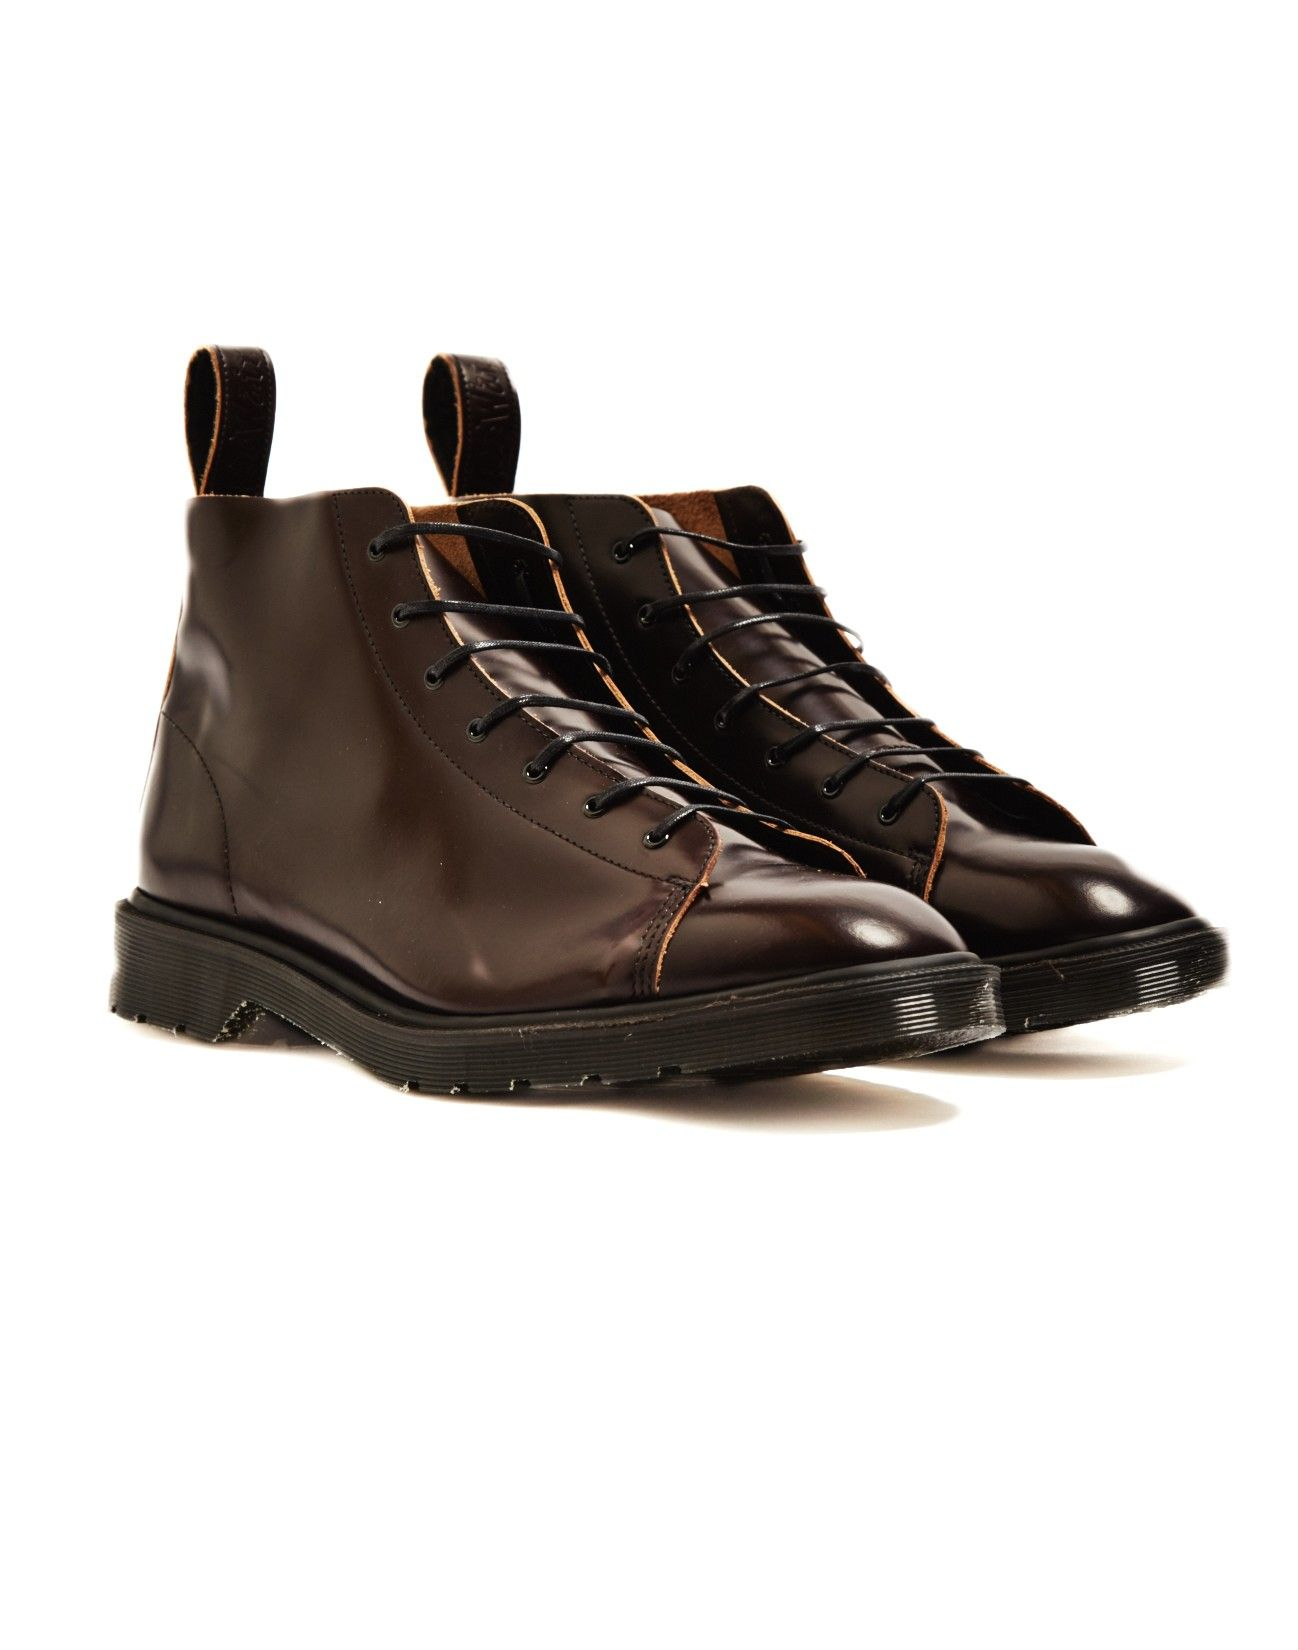 Dr Martens Made in England Classic Monkey Boot Red